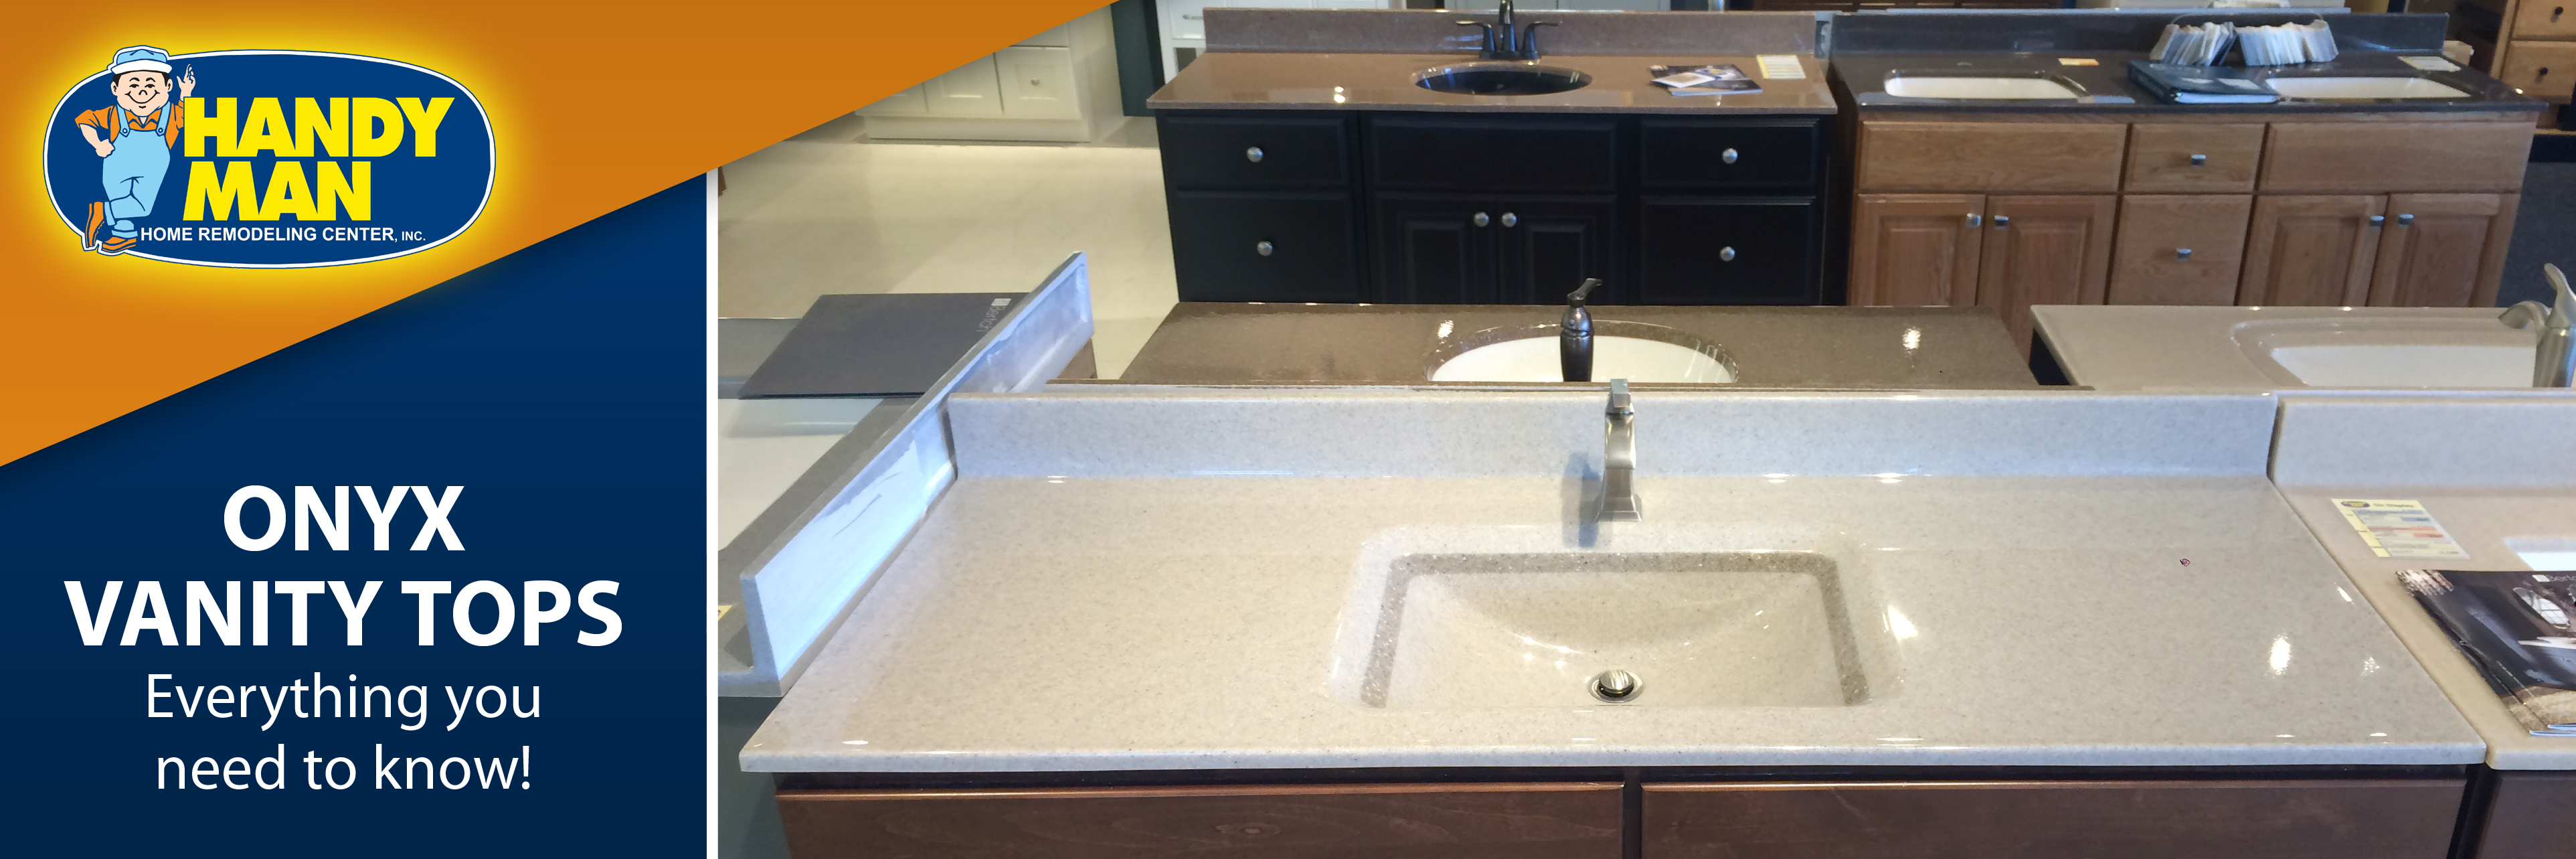 Handy man onyx vanity tops beautiful and functional with a todays onyx vanity tops offer exactly what you are looking for let the experts at handy man show you the most popular colors being used in bathrooms workwithnaturefo